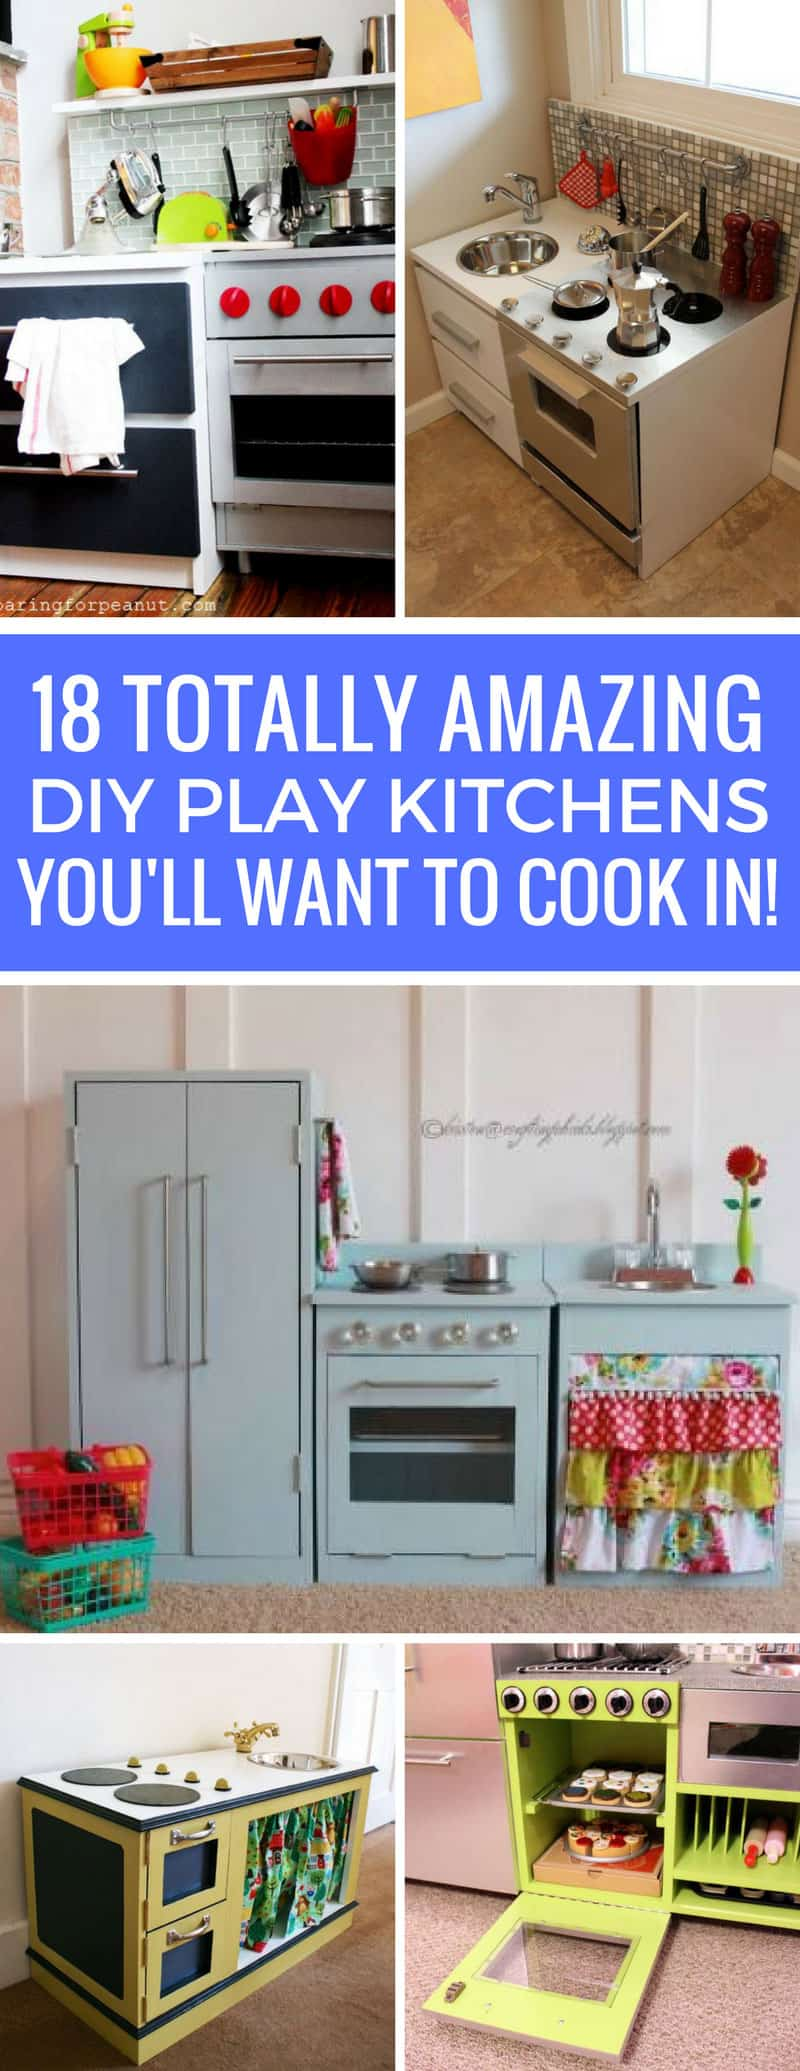 Wow - these DIY play kitchens are incredible! So much inspiration - Thanks for sharing!